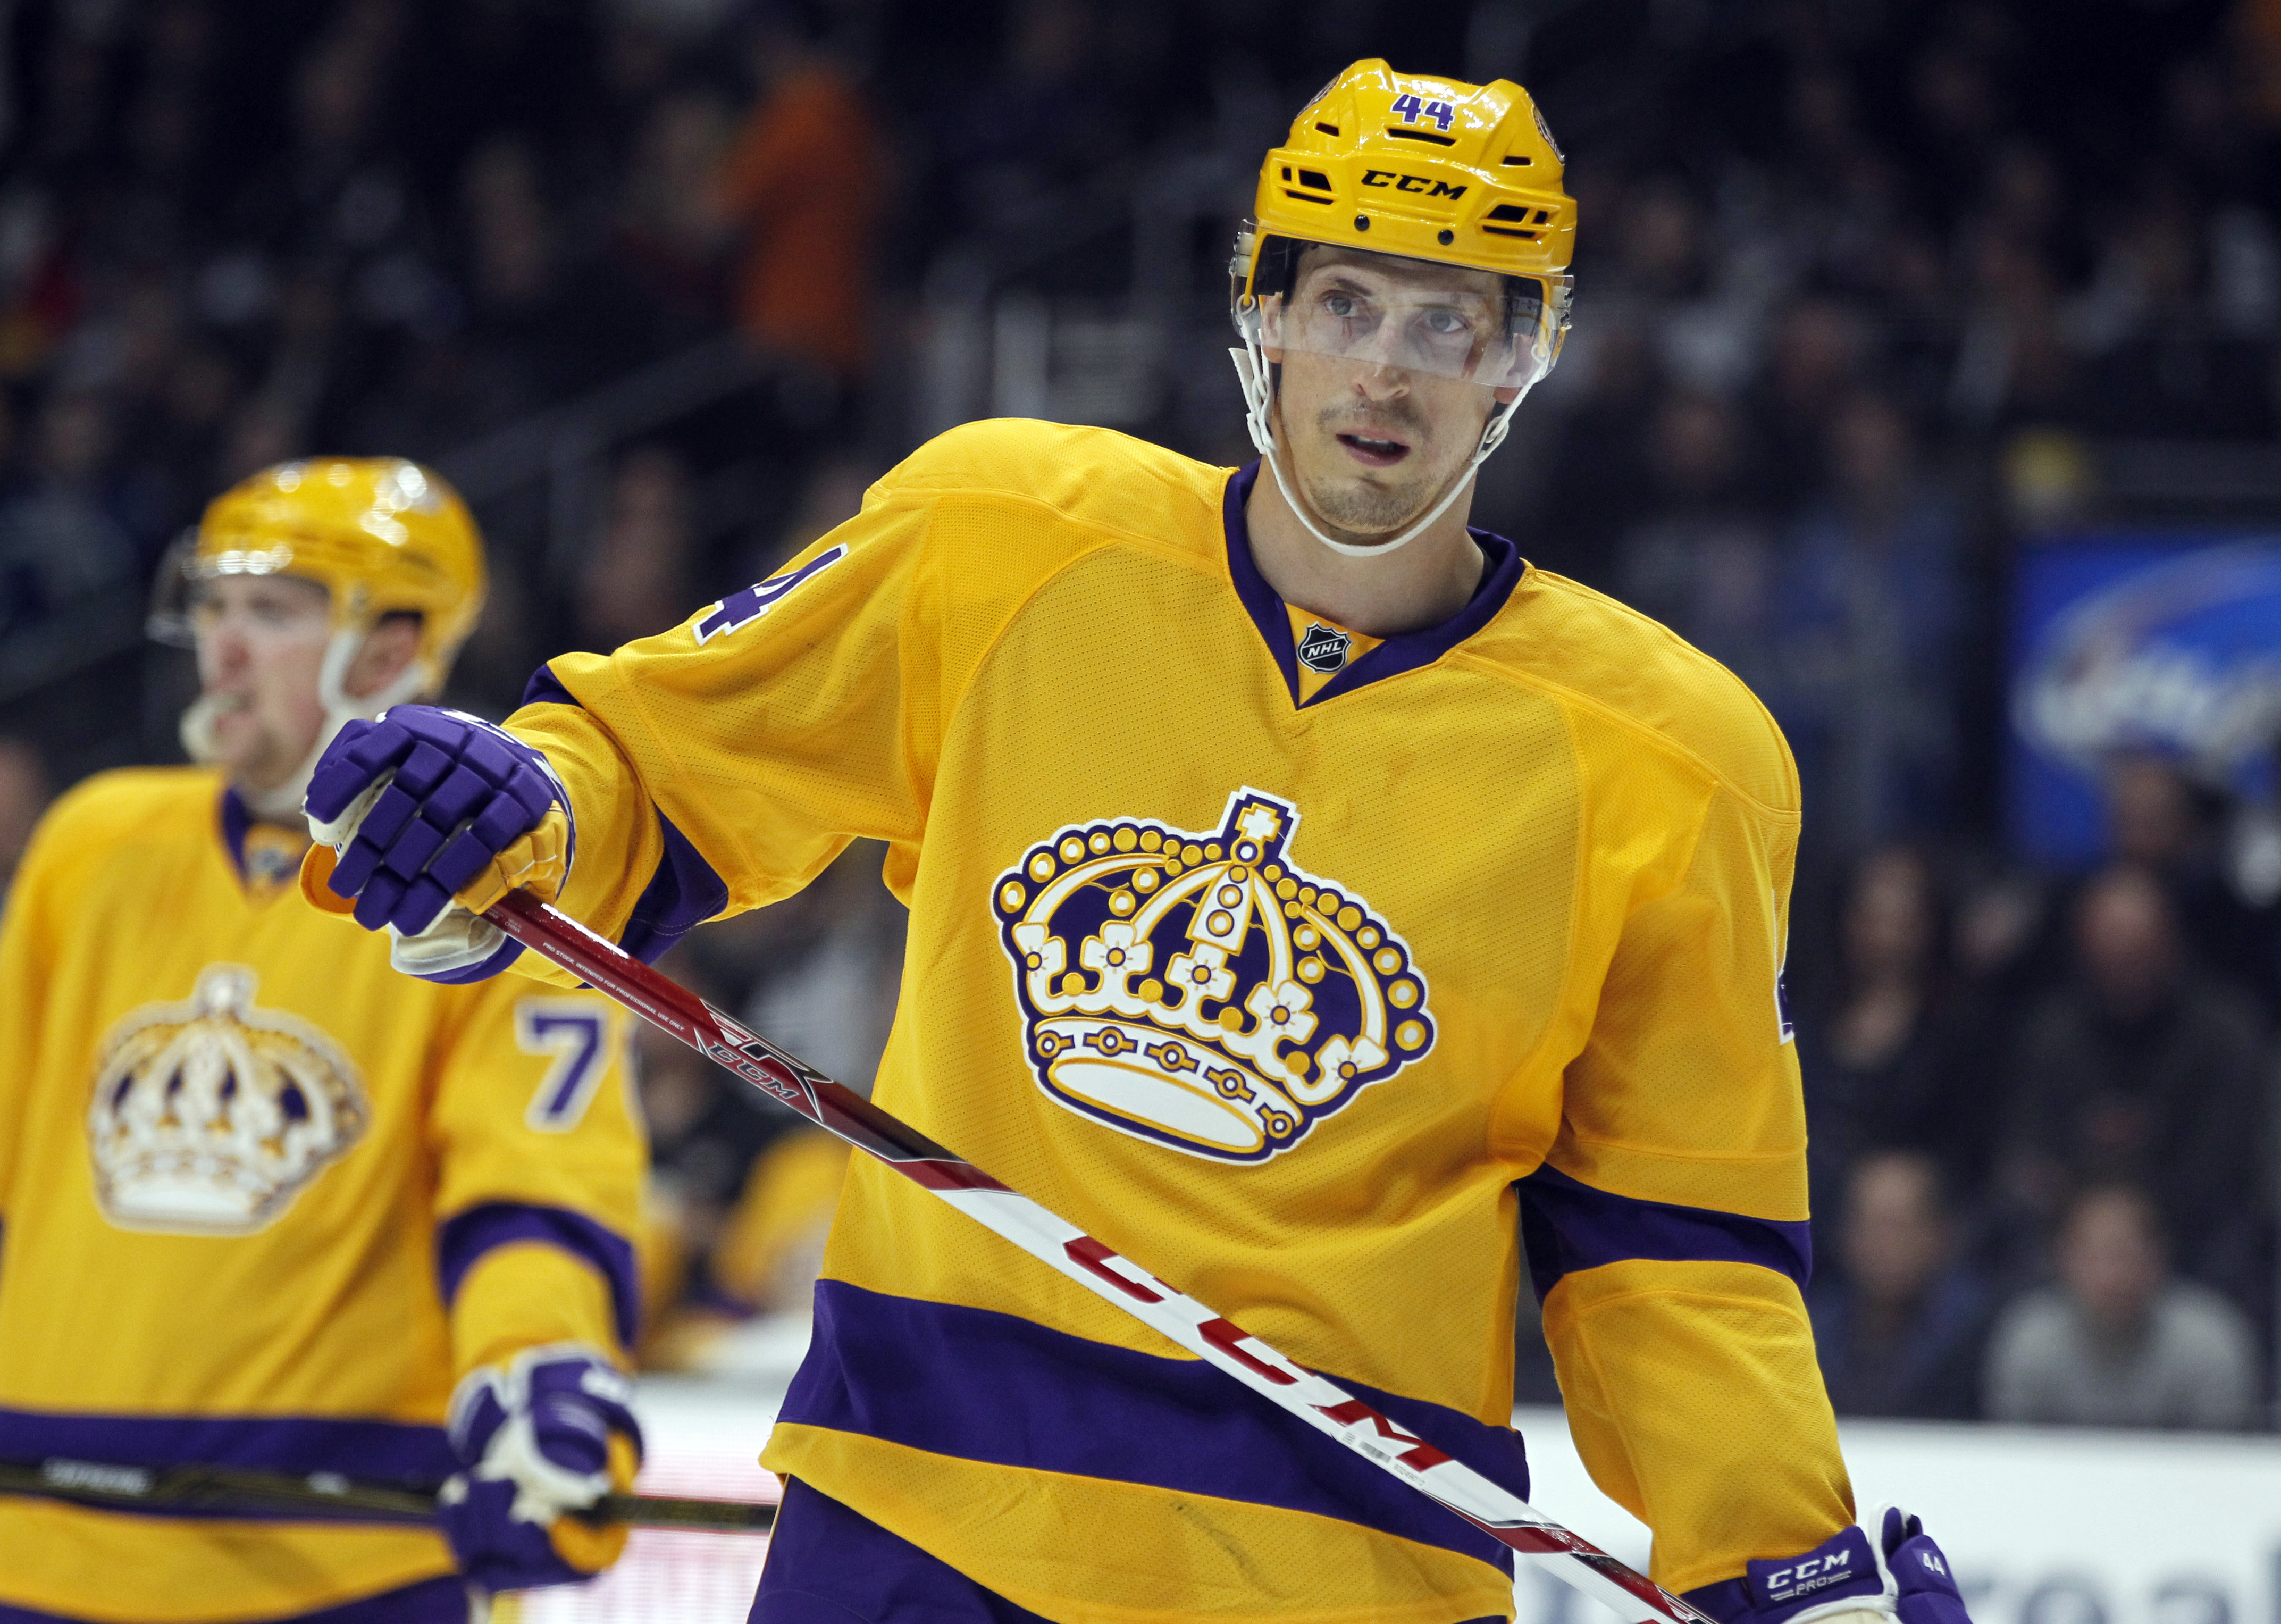 Los Angeles Kings center Vincent Lecavalier (44) waits to face off against the Vancouver Canucks during the first period of an NHL hockey game in Los Angeles, Monday, March 7, 2016. (AP Photo/Alex Gallardo)